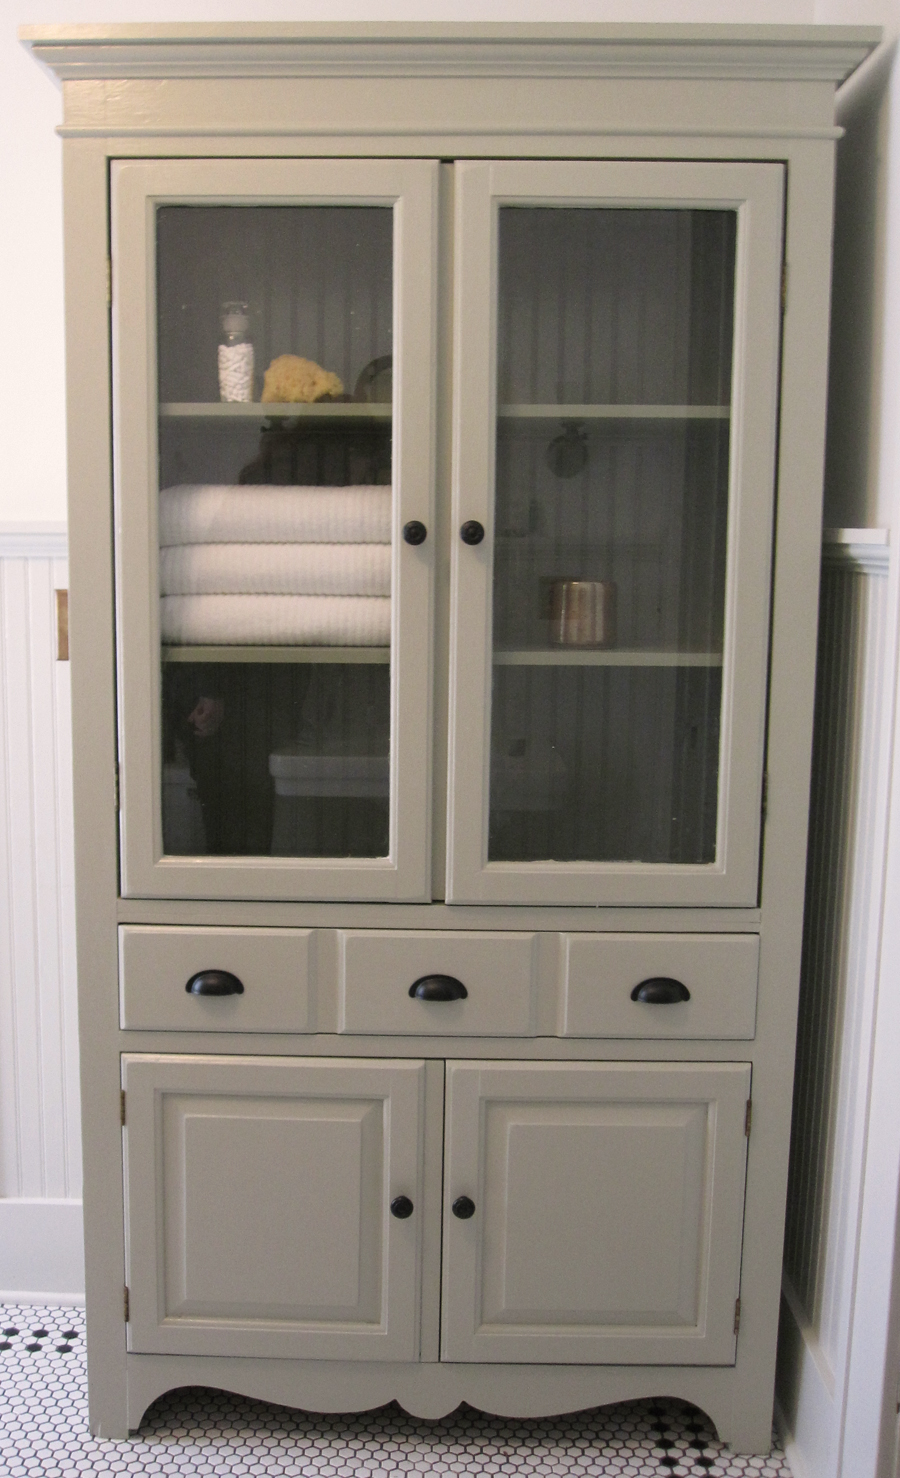 Keep Smiling: TV Cabinet to Linen Cabinet